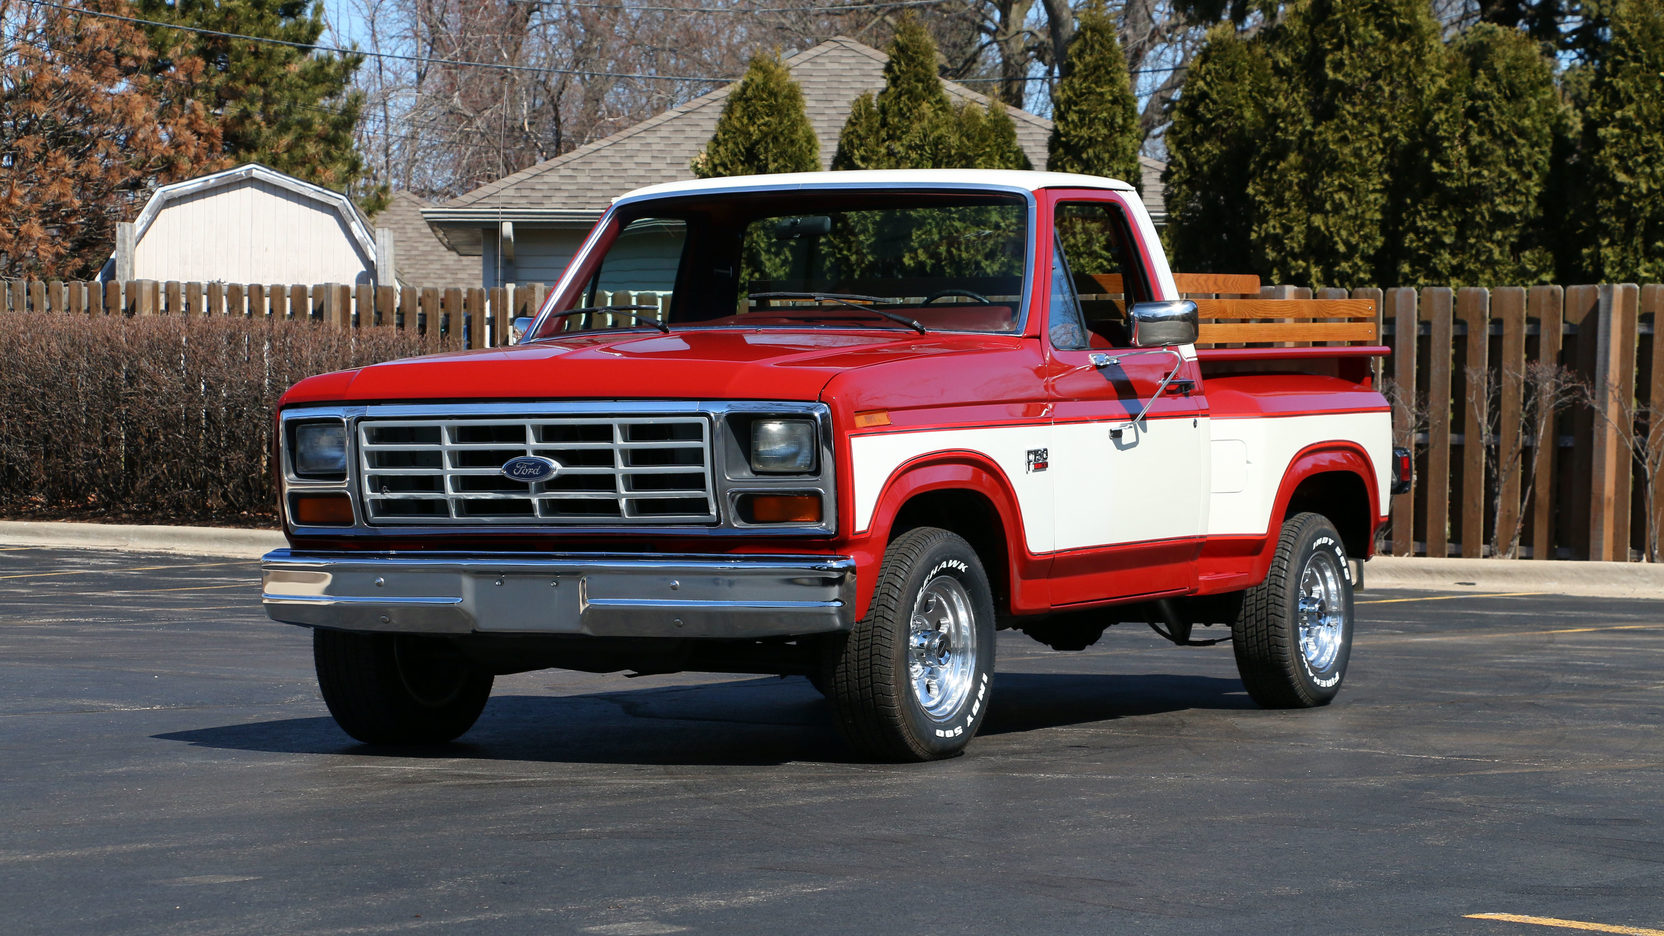 1985 Ford F-series